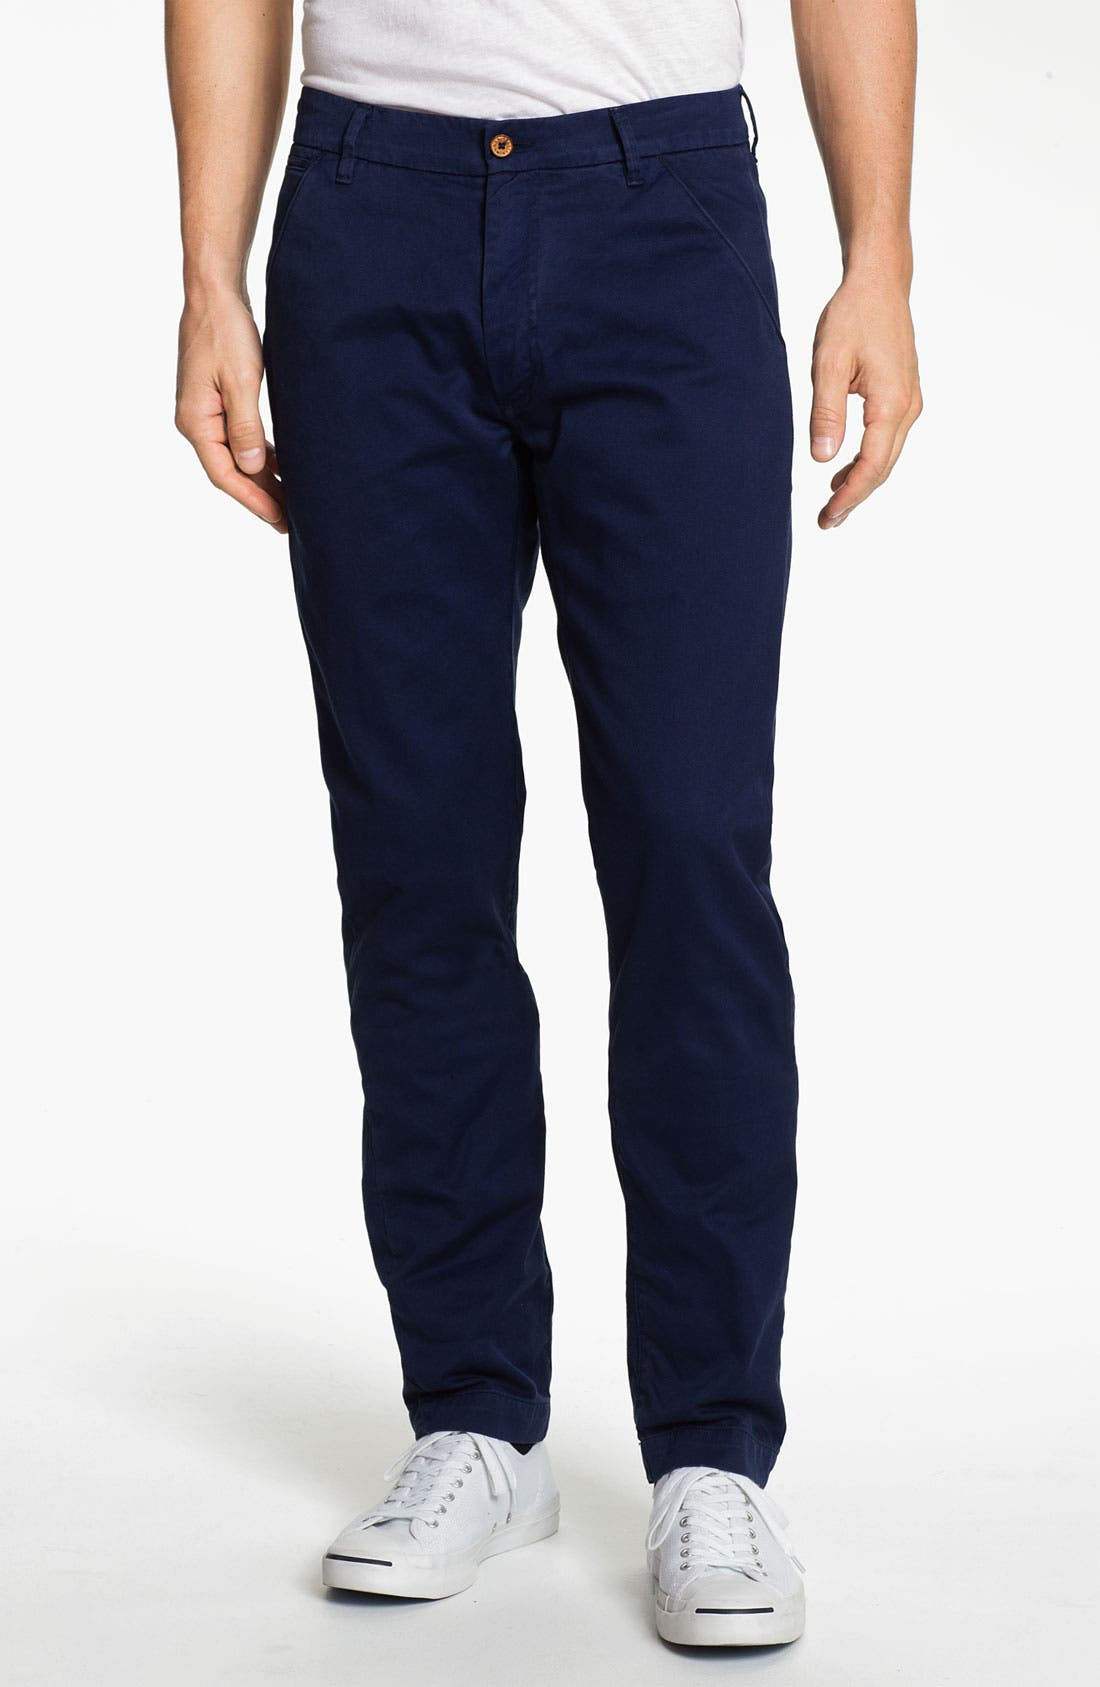 Main Image - Levi's® Made & Crafted™ 'Spoke' Cotton Chinos